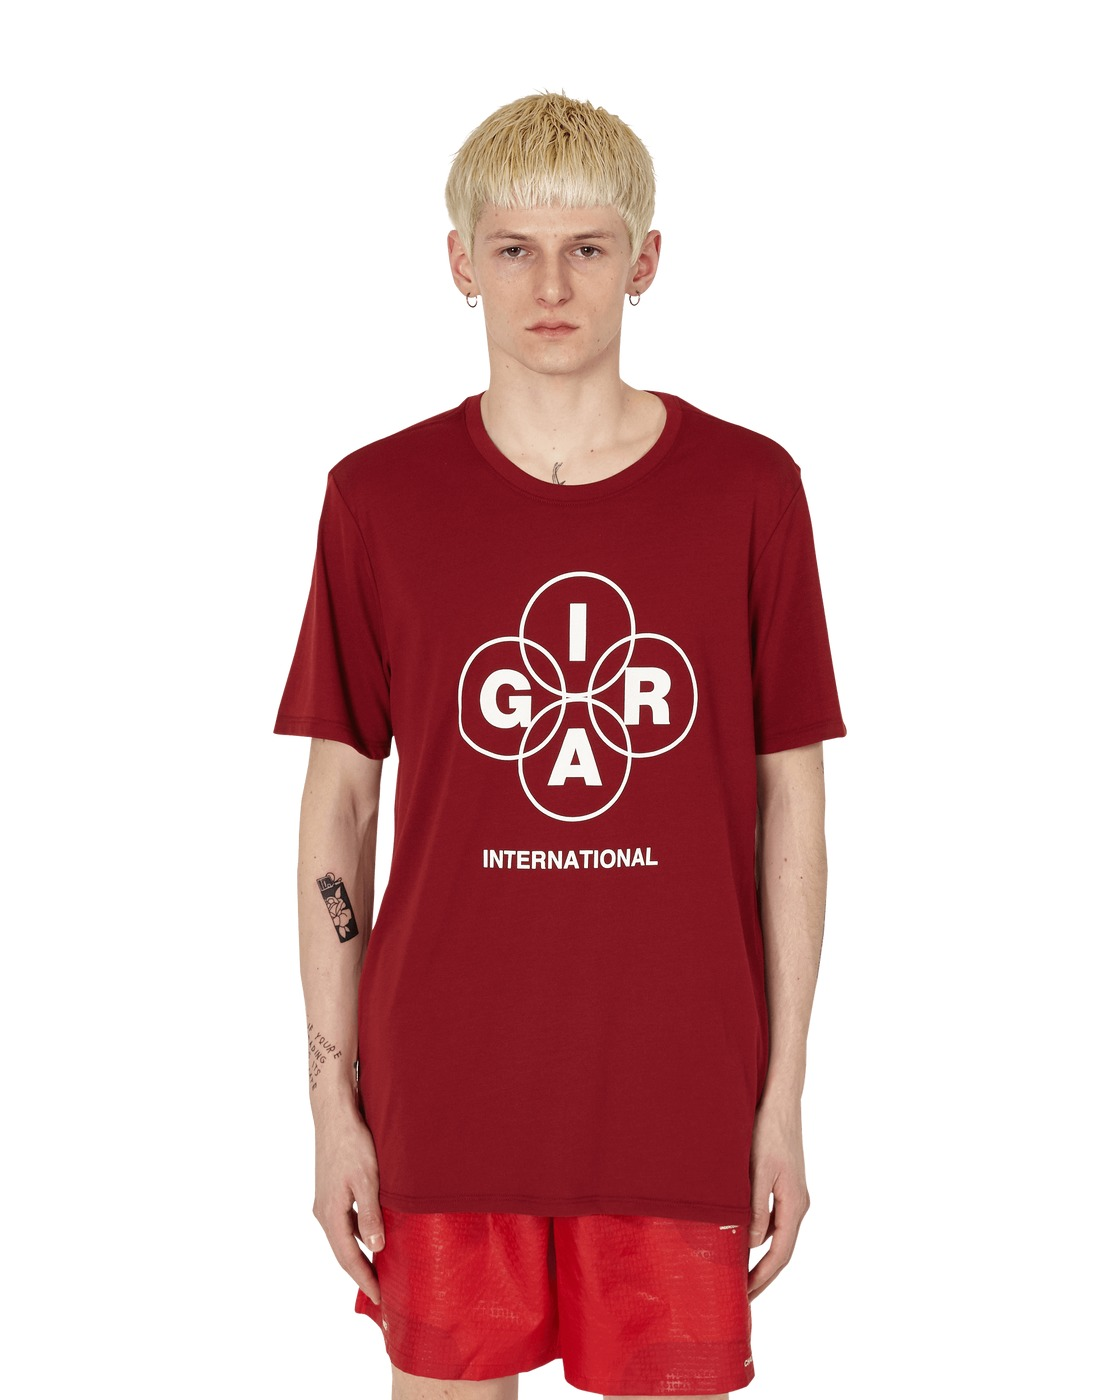 Nike Special Project Graphic T Shirt 1 Team Red/Sail